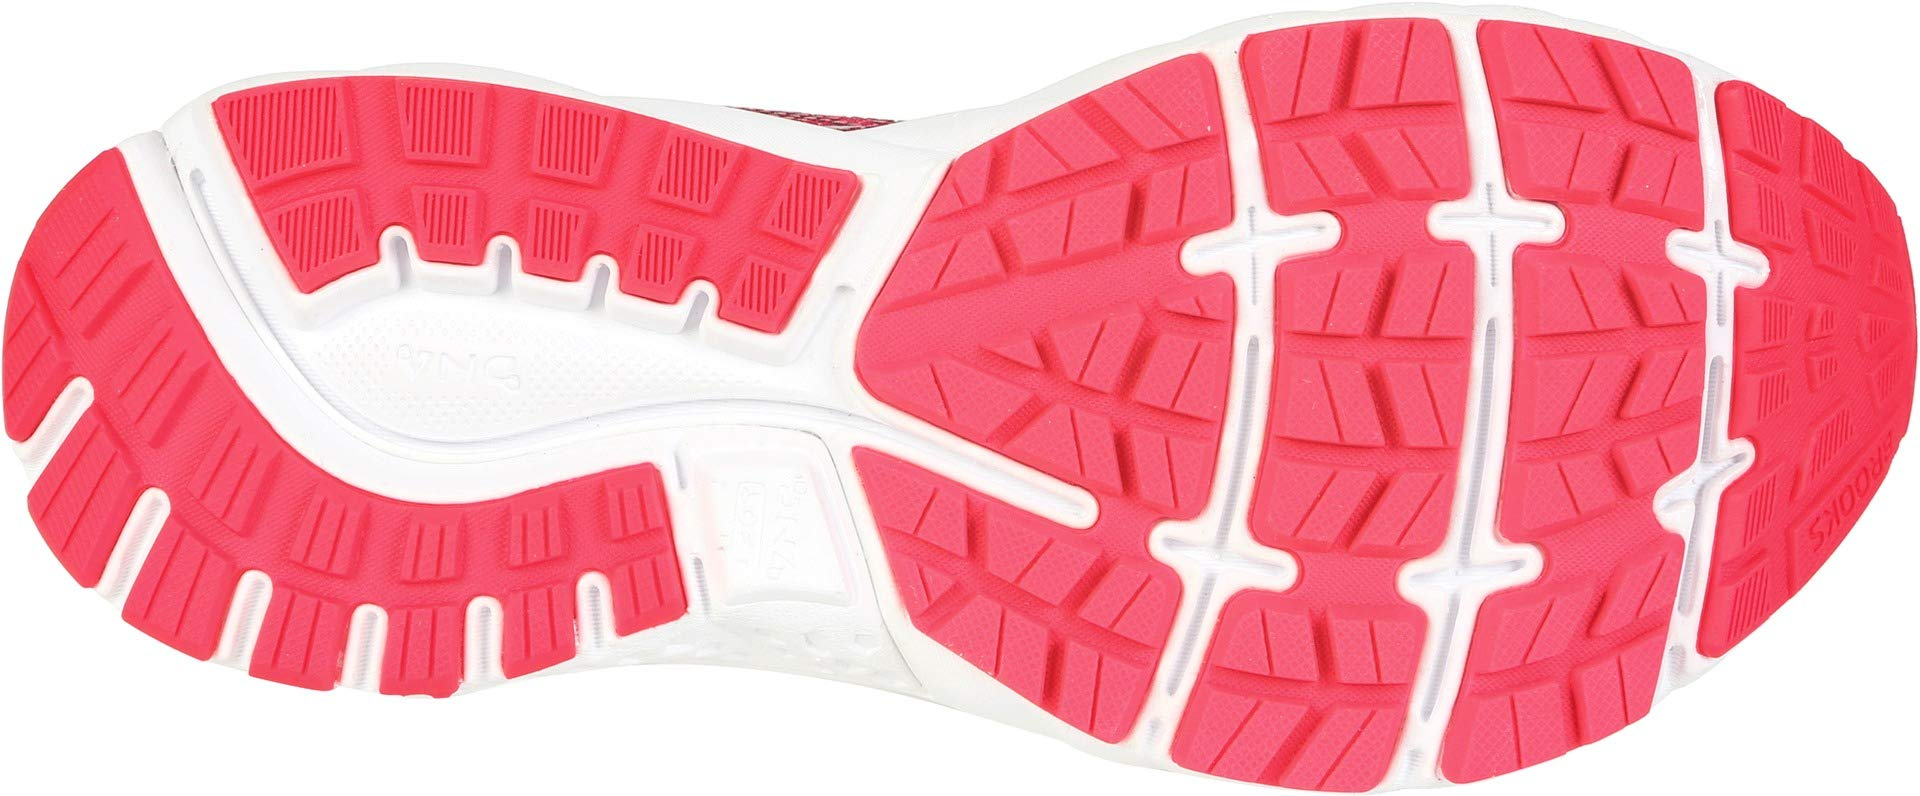 Brooks Women's Ghost 11 Aster/Diva Pink/Silver 5.5 B US by Brooks (Image #2)